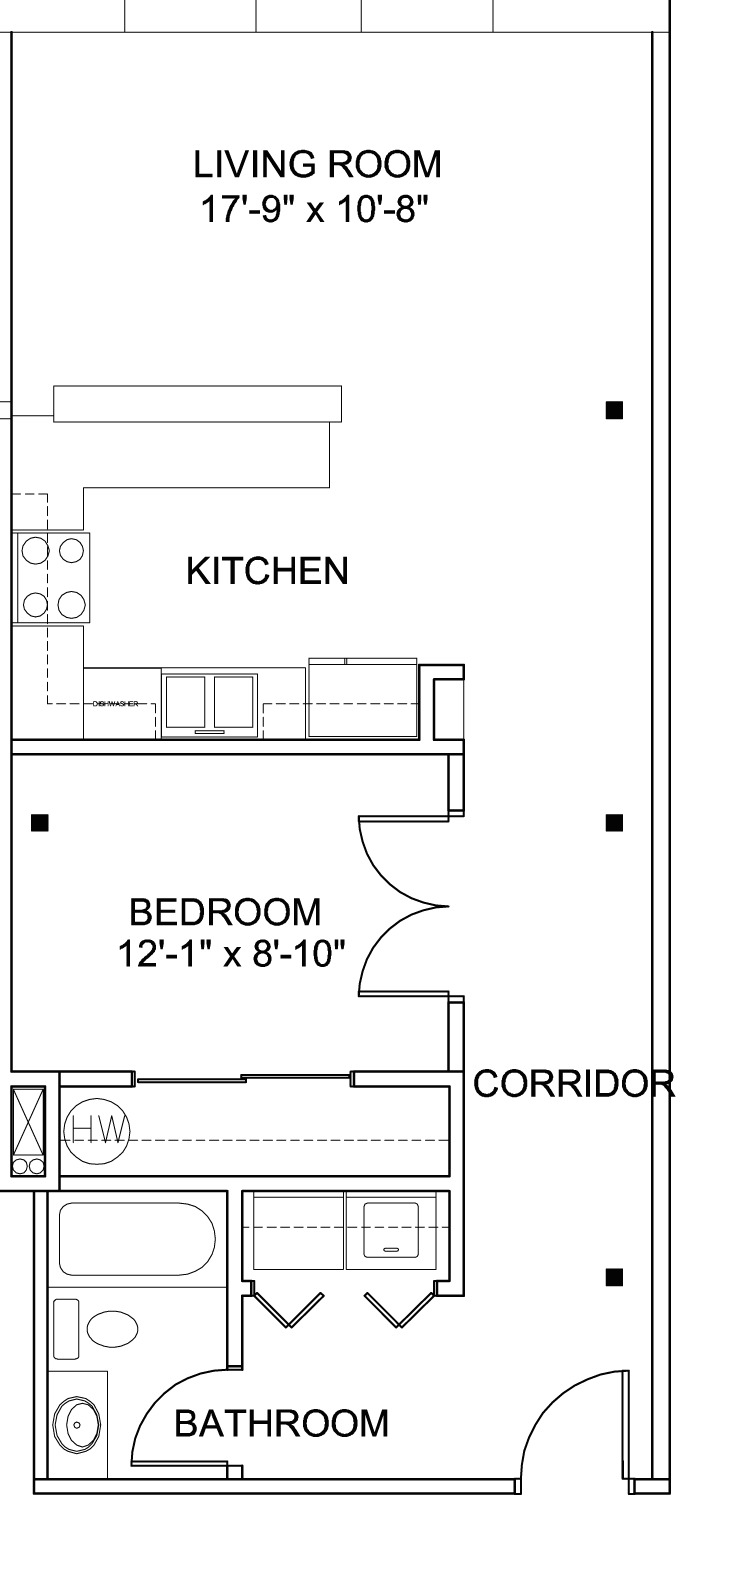 Fleetwood1bedroom